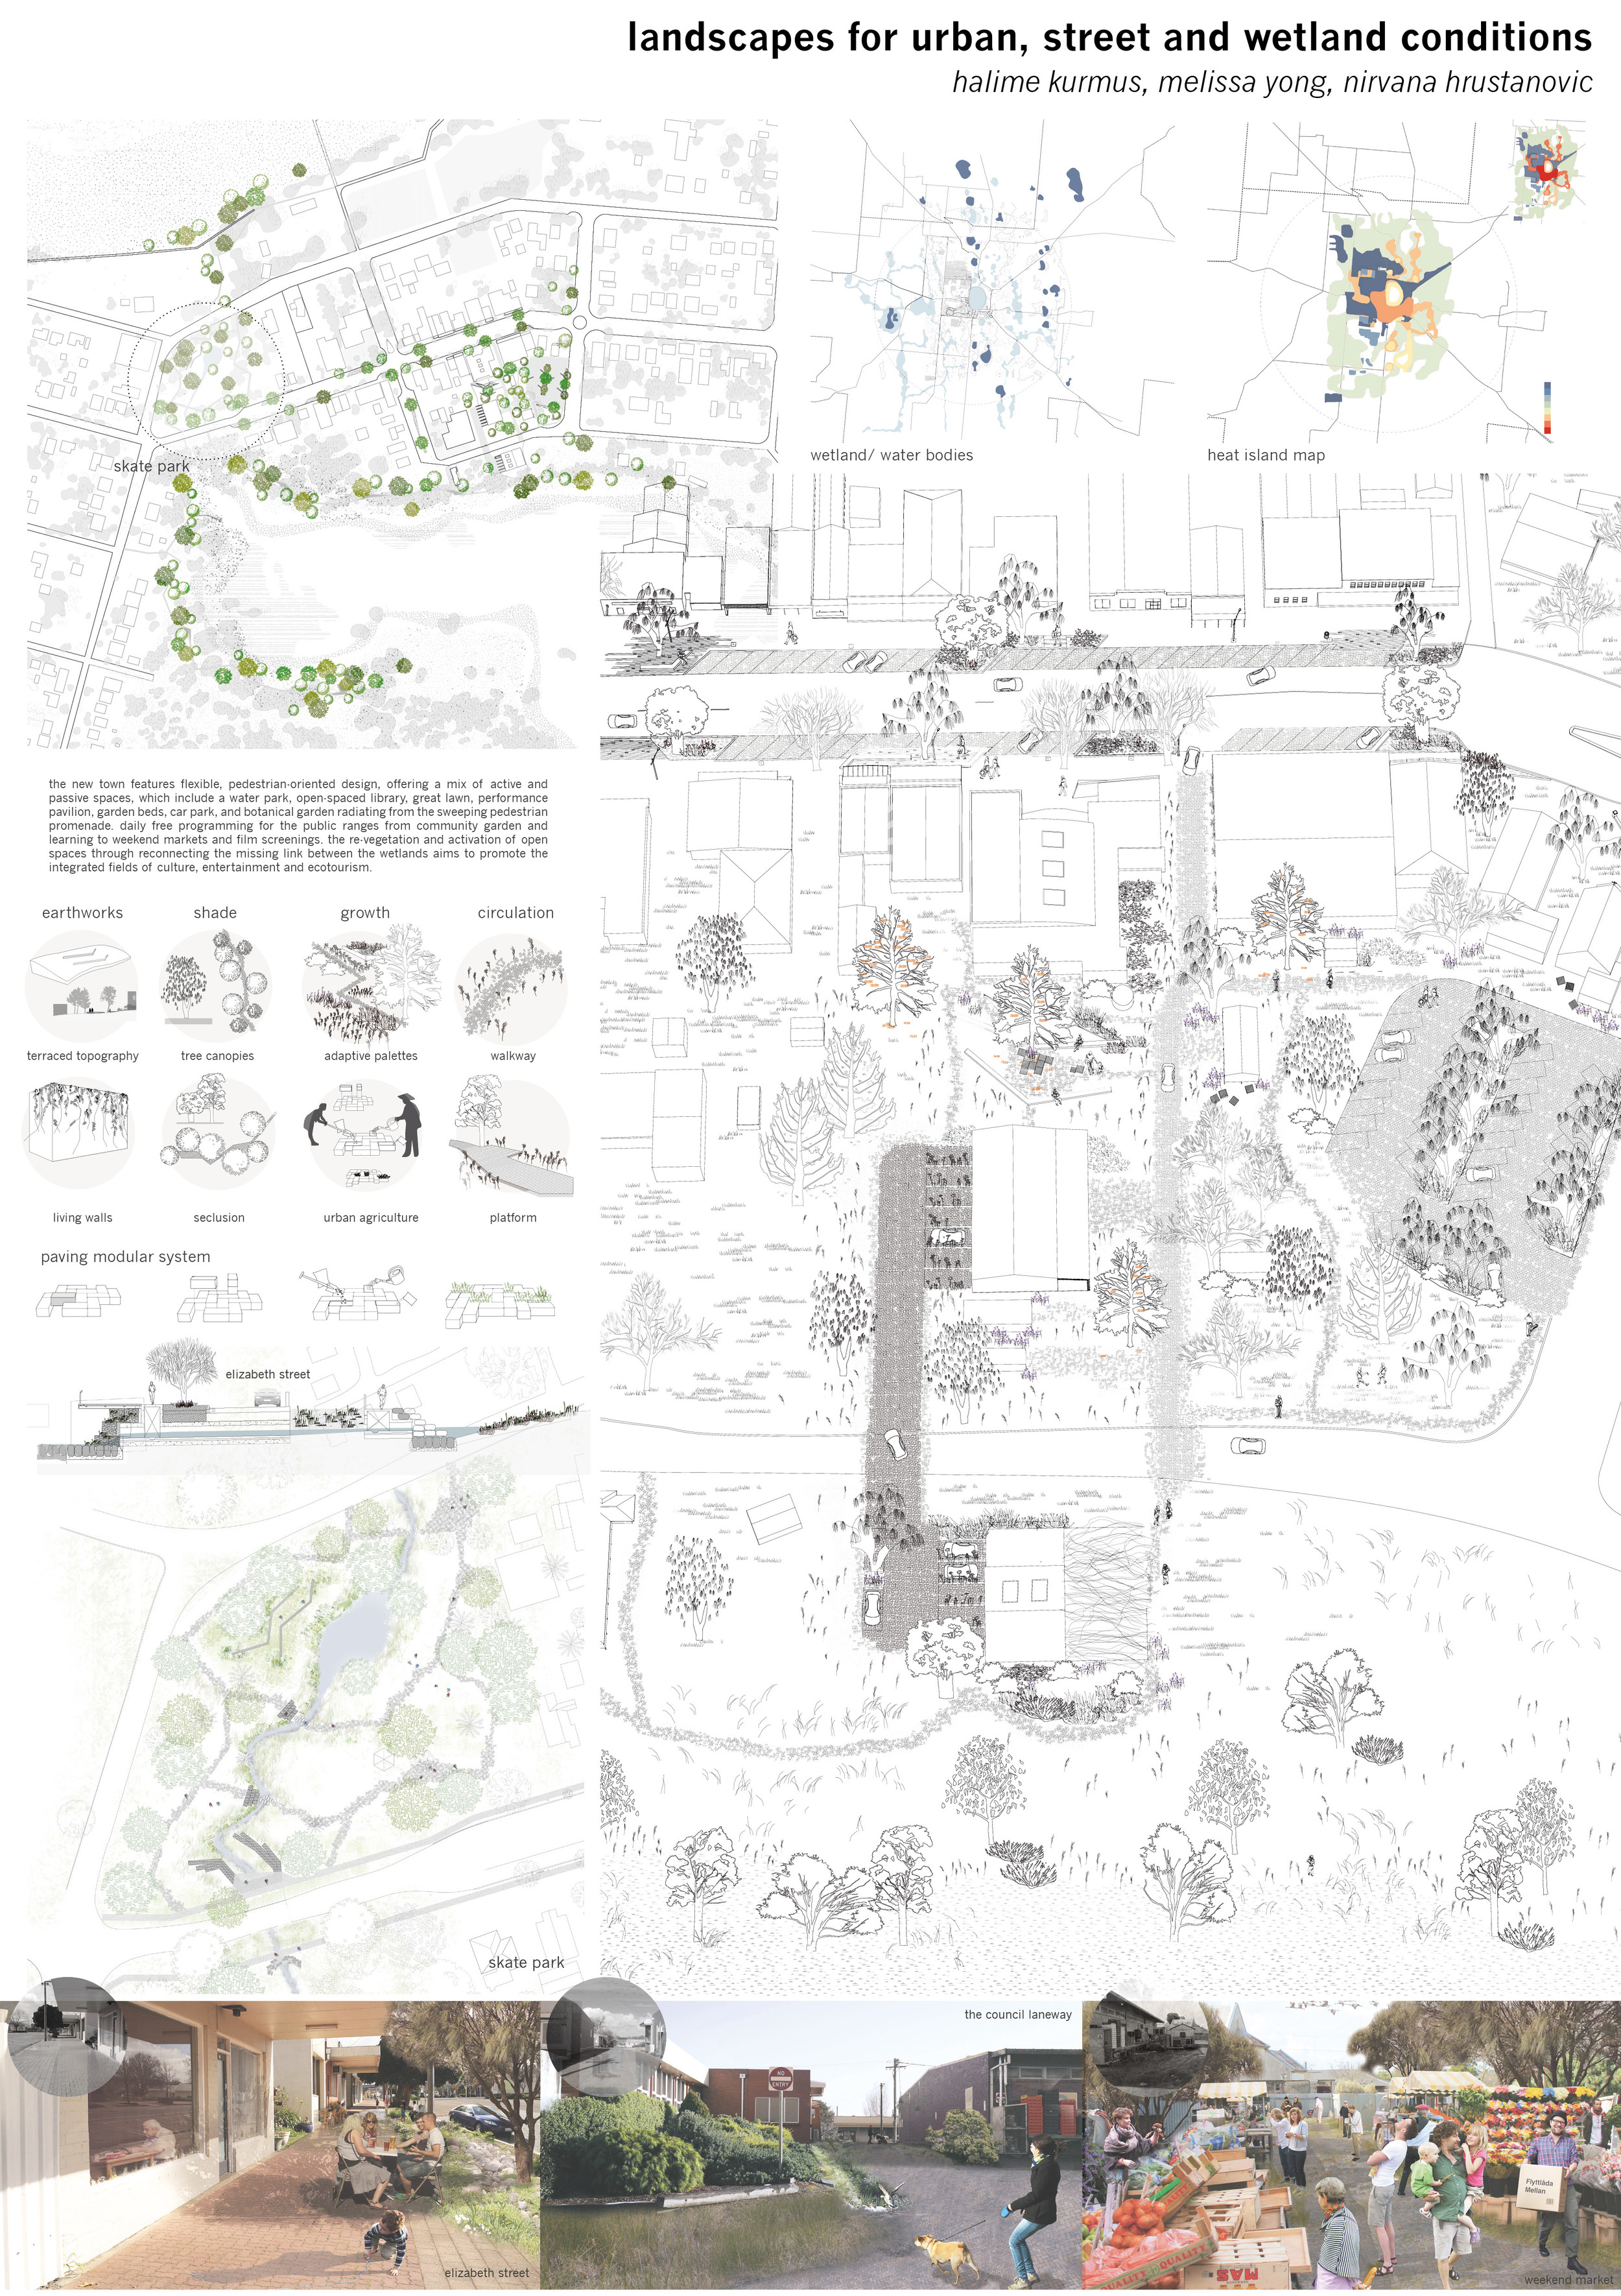 Water sensitive urban design using porous materials links the main street,public spaces and cross programmed market/car park facilities with the regenerated wetland to the south.